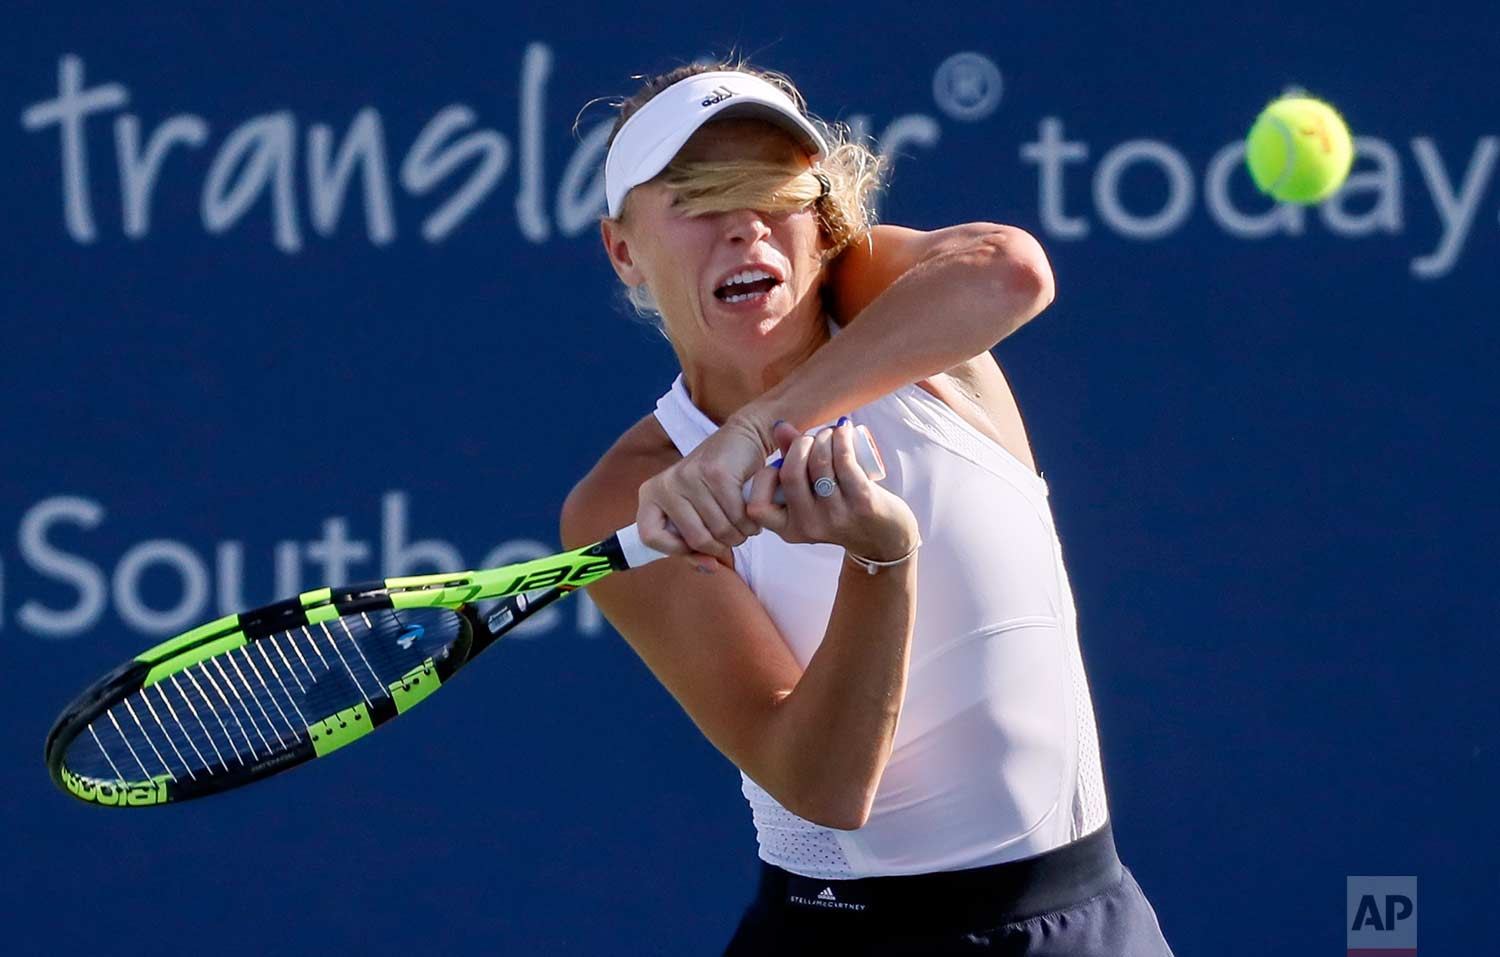 Caroline Wozniacki, of Denmark, returns to Karolina Pliskova, of the Czech Republic, at the Western & Southern Open tennis tournament, Friday, Aug. 18, 2017, in Mason, Ohio. (AP Photo/John Minchillo)